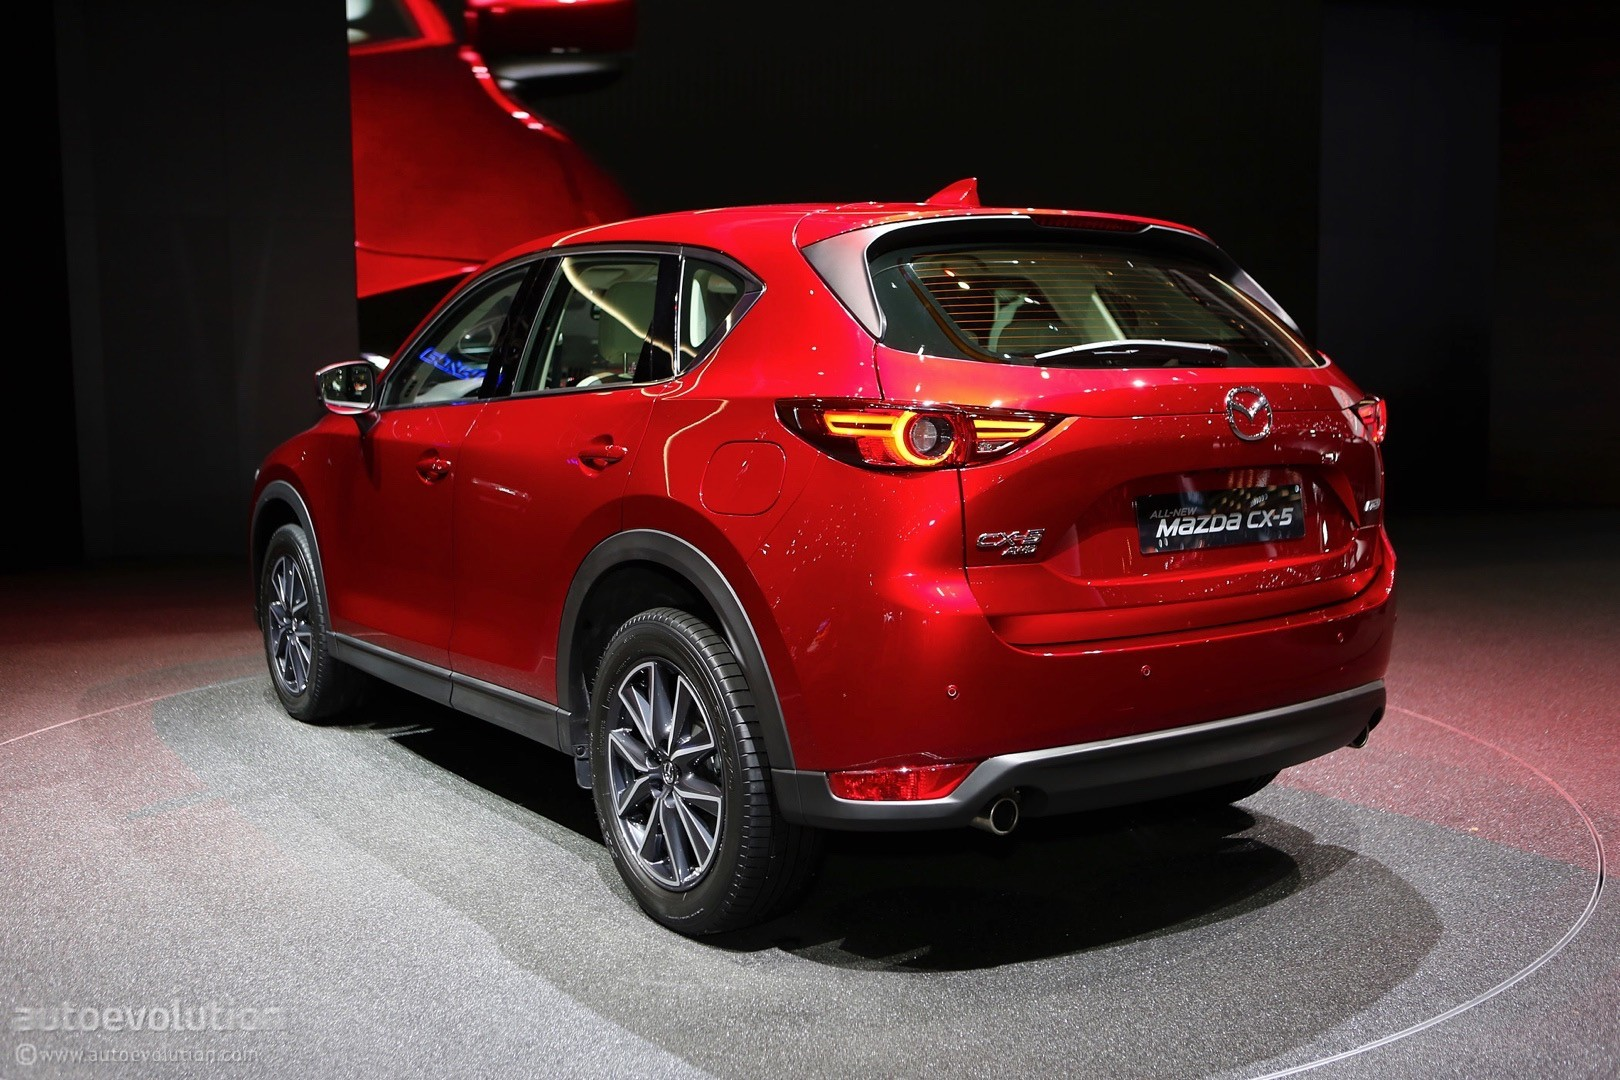 2018 mazda cx 8 photographed uncamouflaged in chicago packing diesel power autoevolution. Black Bedroom Furniture Sets. Home Design Ideas